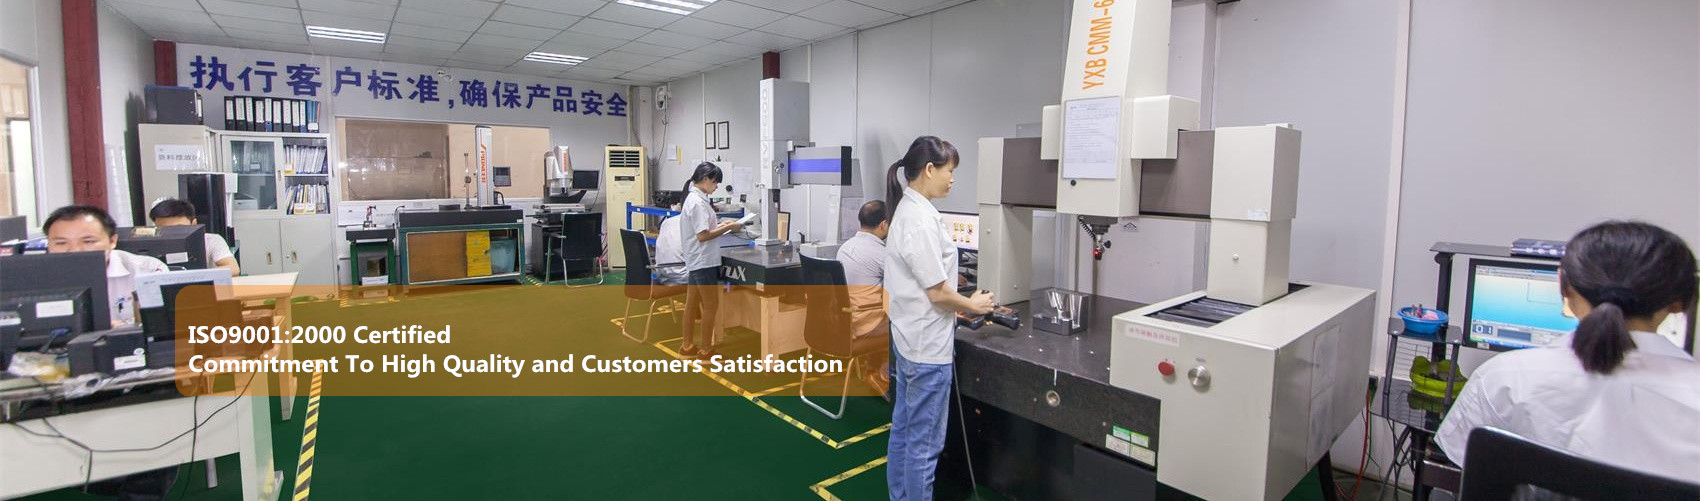 High Quality and Customers Satisfication